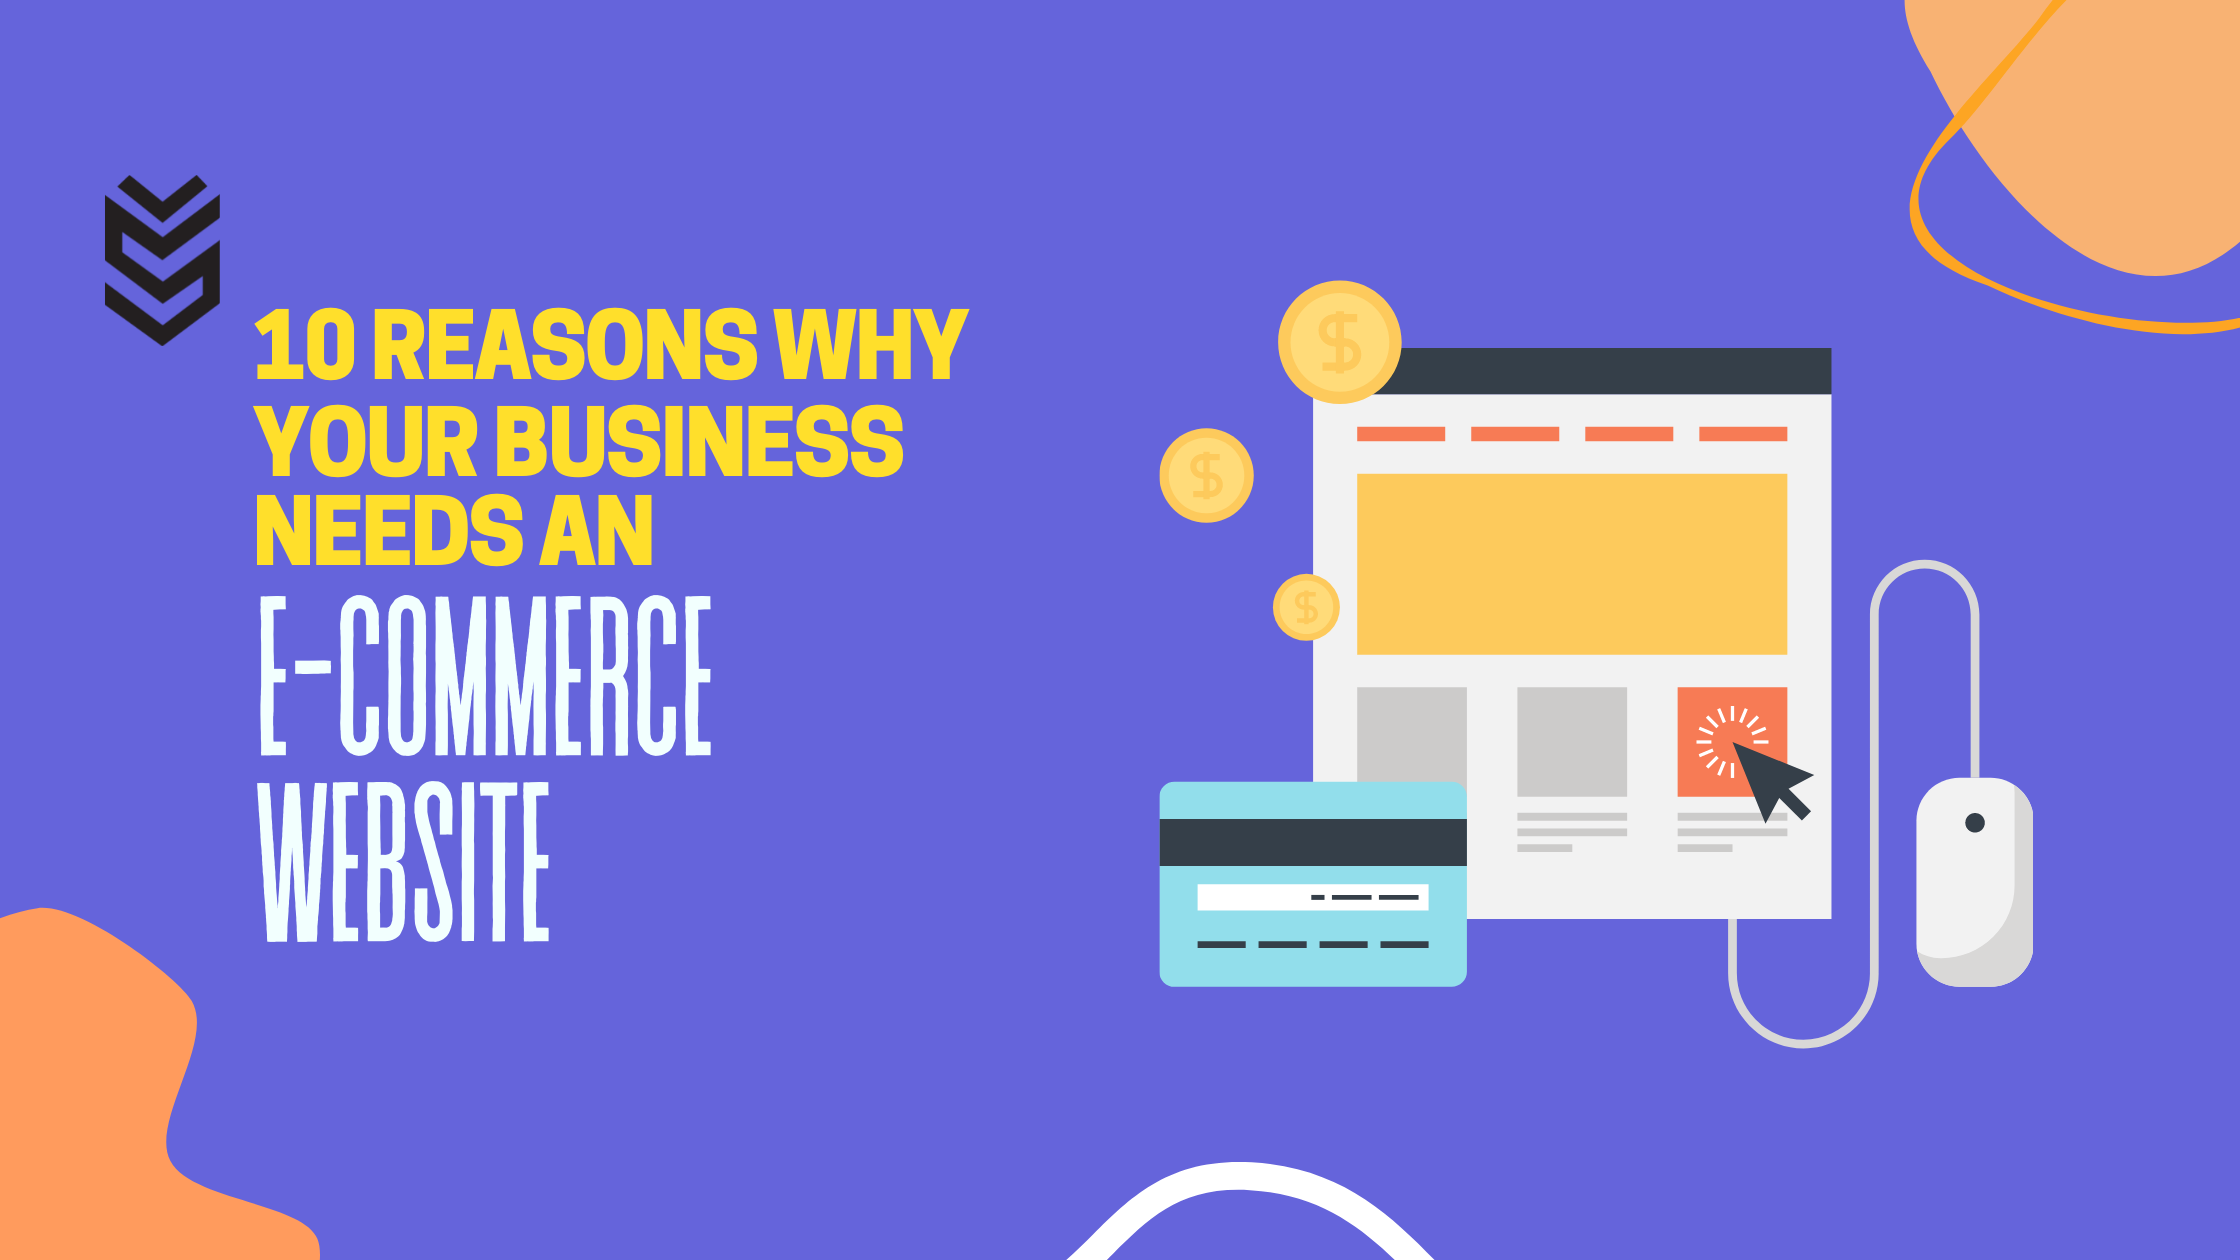 10 Reasons why your business needs an e-commerce website